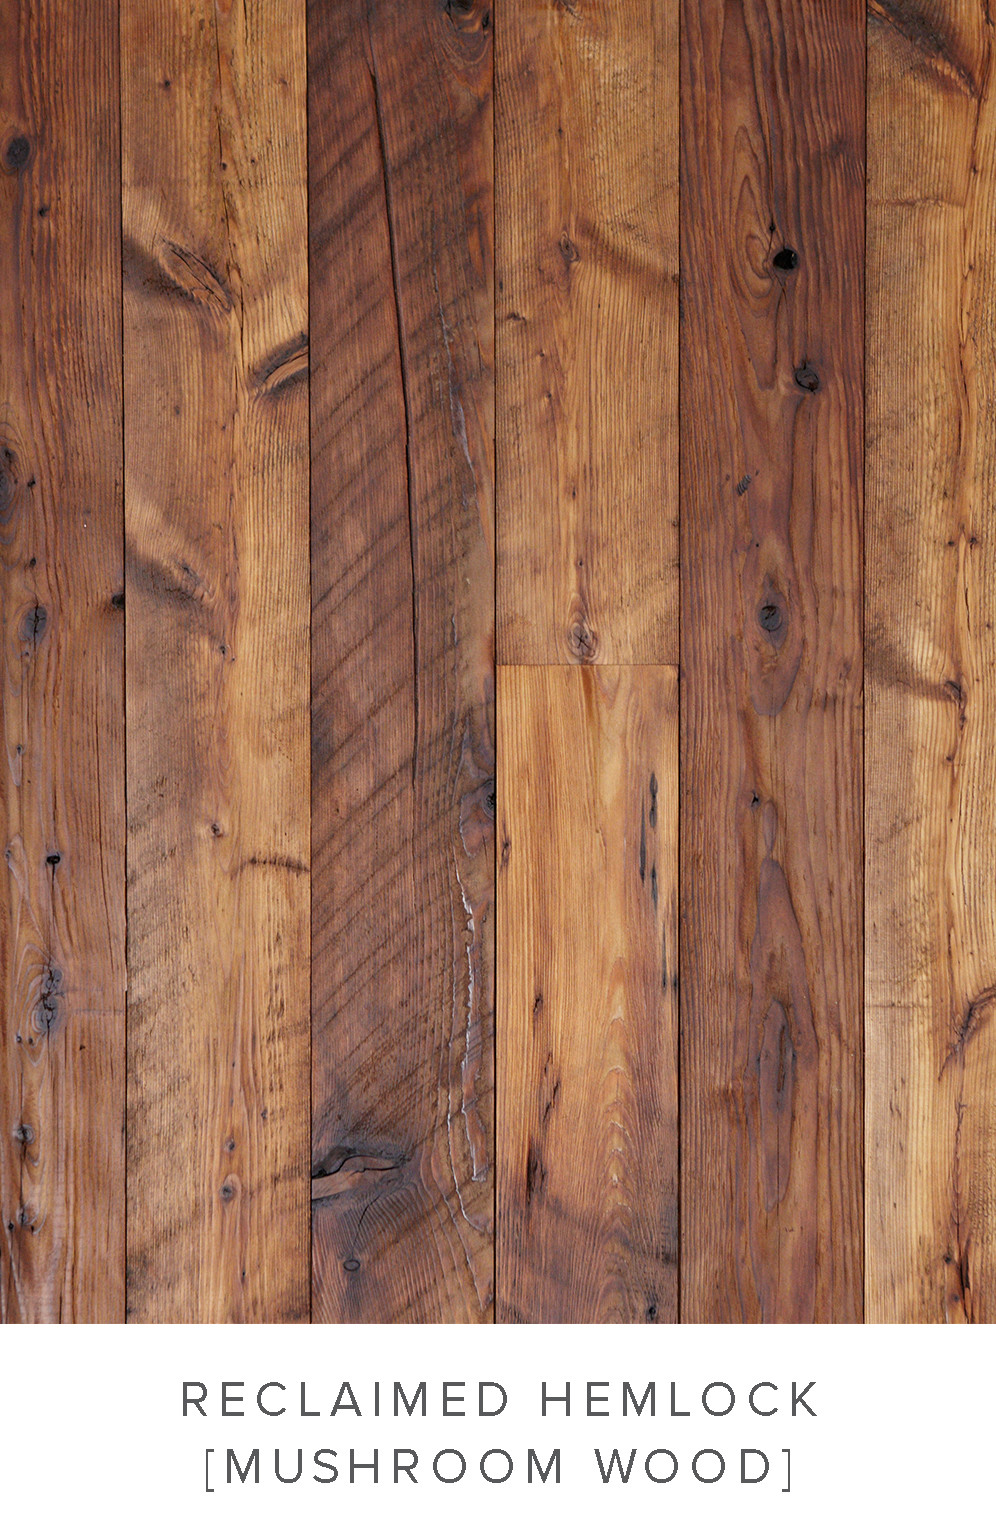 prefinished hardwood flooring ct of extensive range of reclaimed wood flooring all under one roof at the throughout reclaimed hemlock mushroom wood